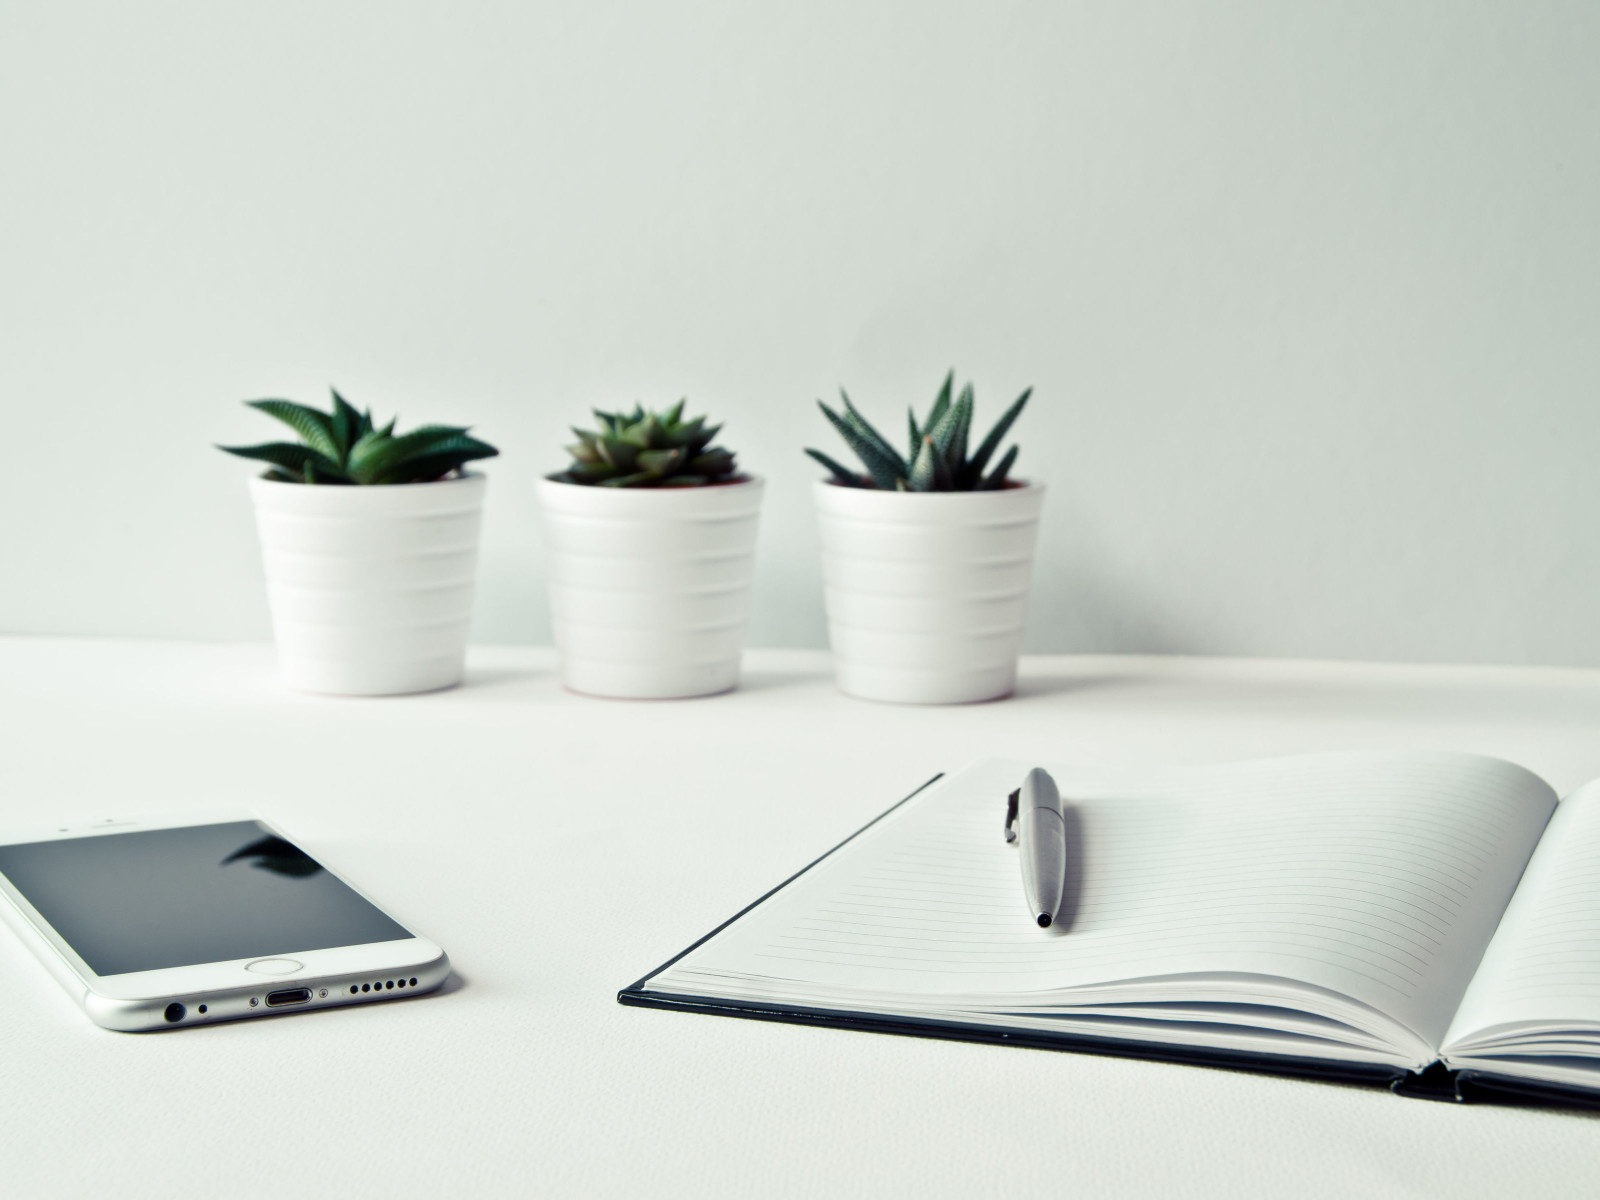 Notebook on desk with three cacti and pen and smartphone